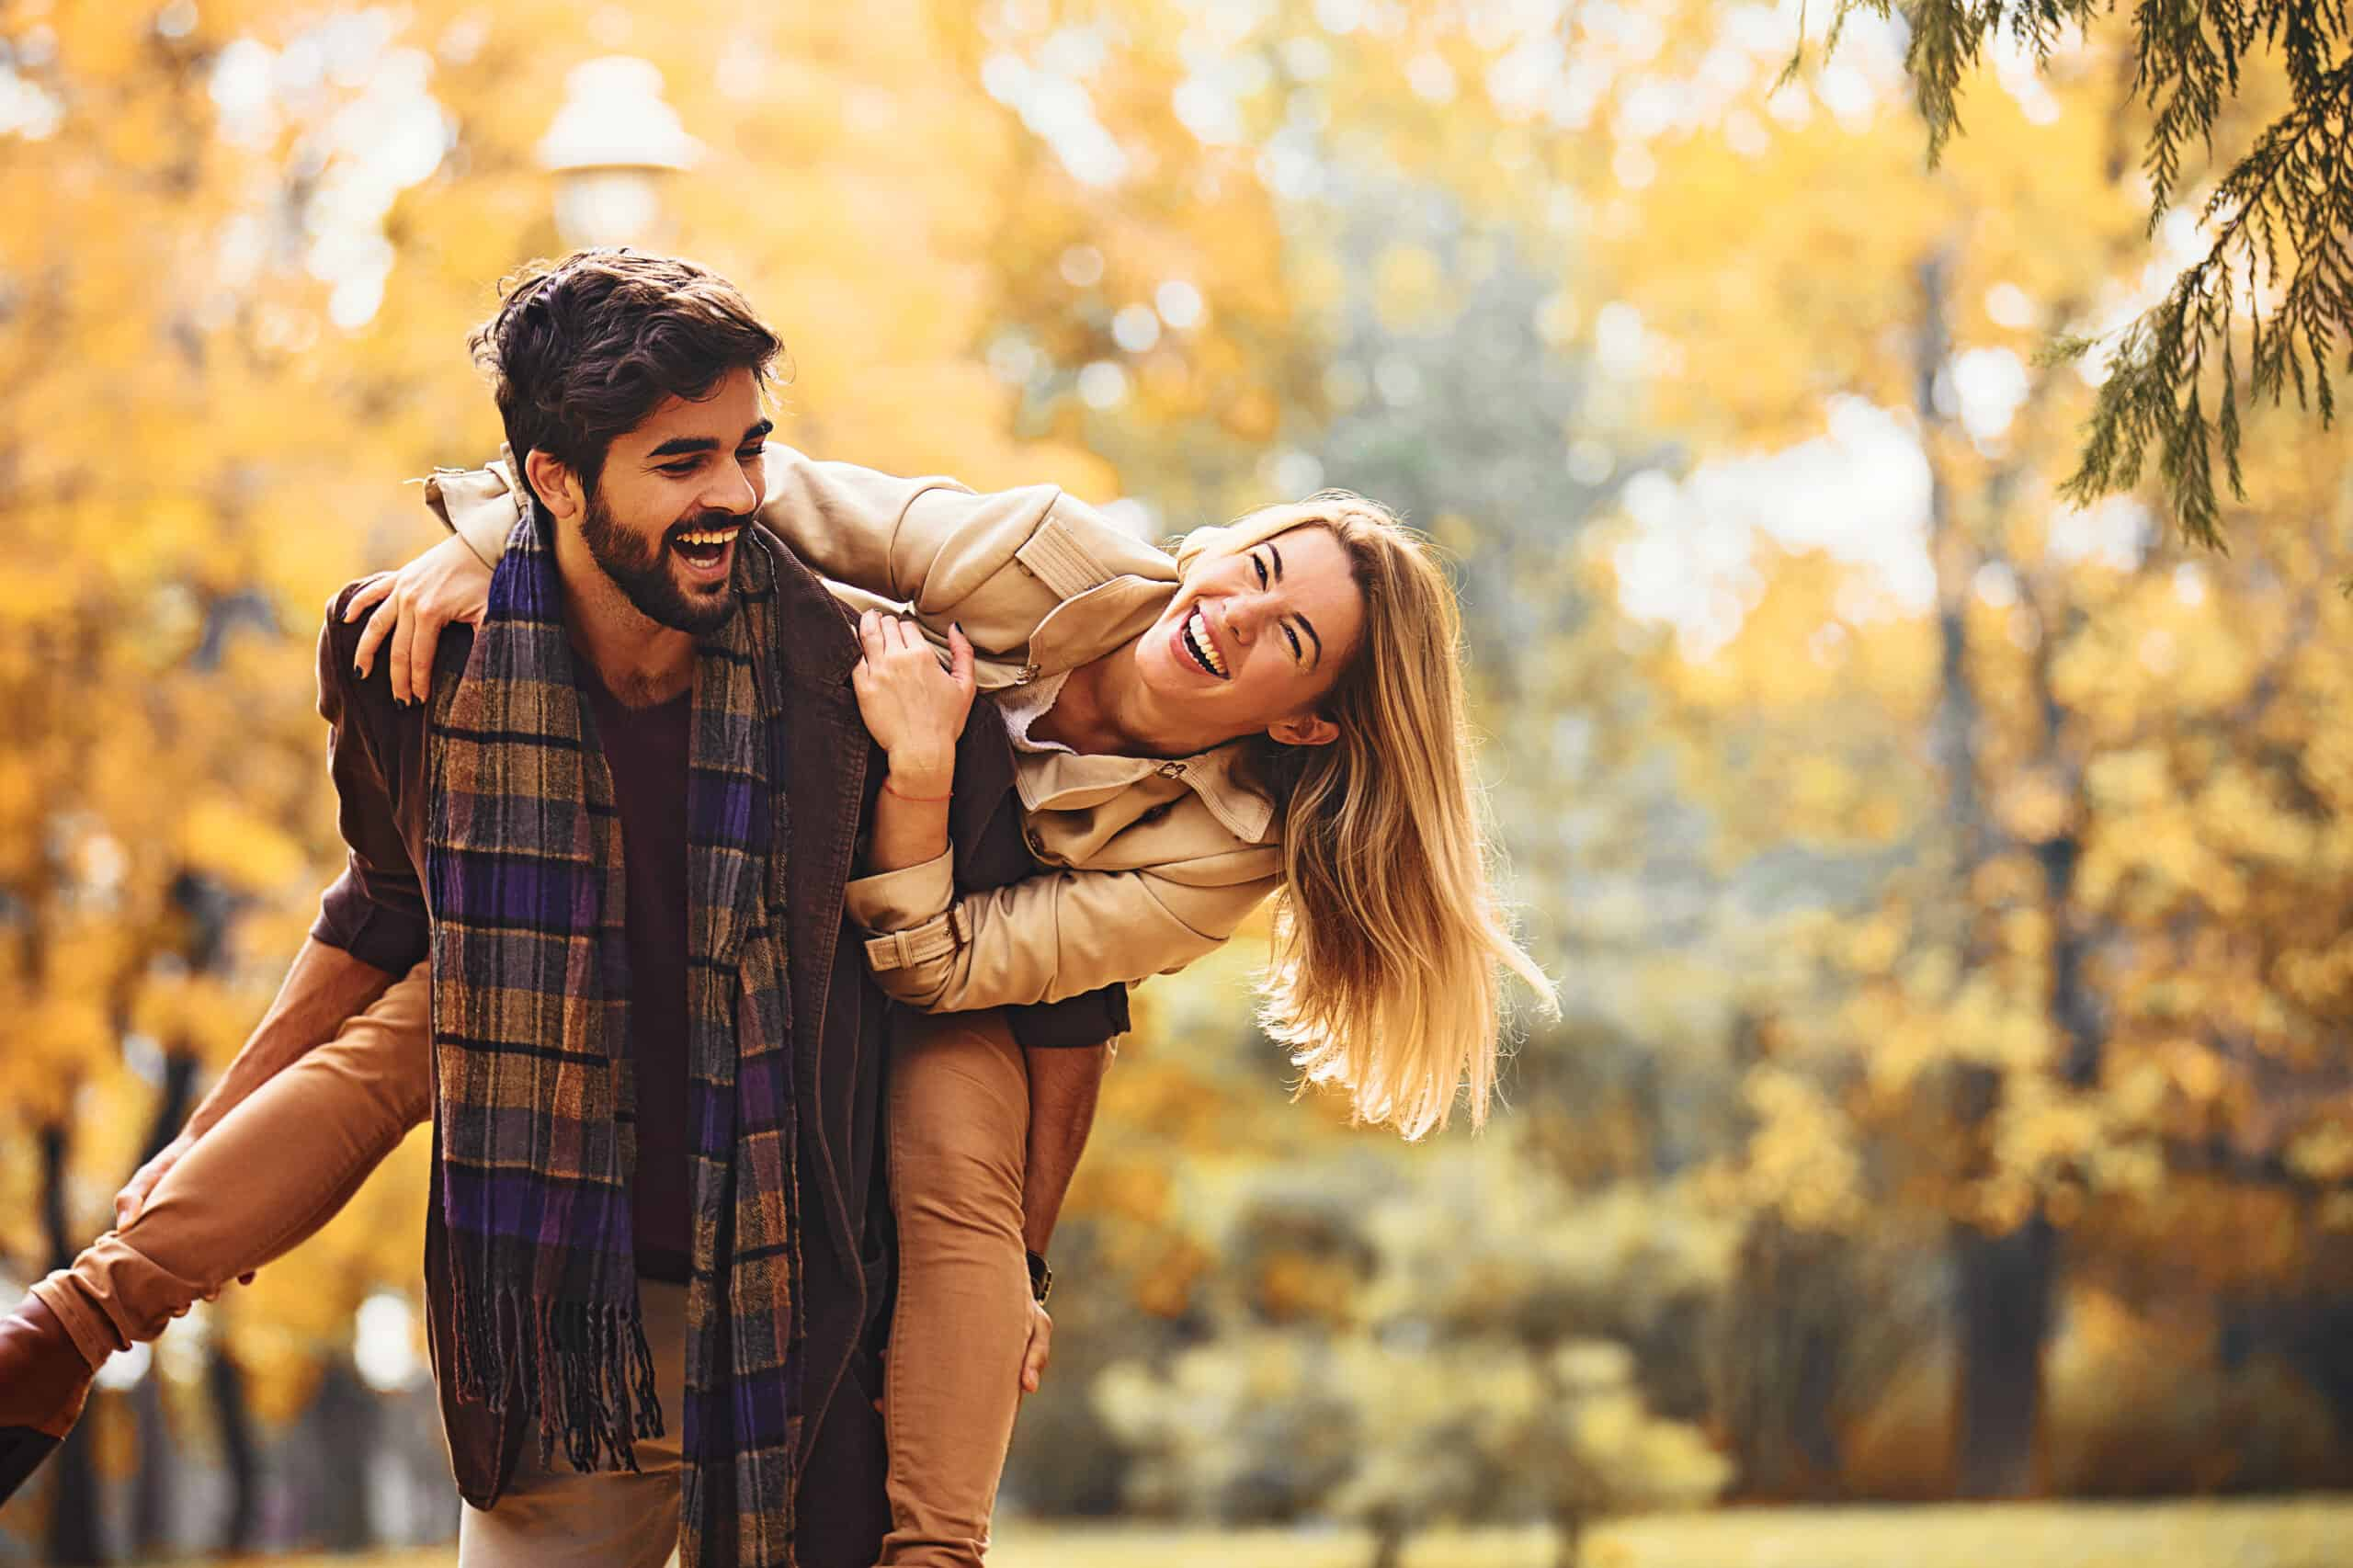 romantic getaways in massachusetts - couple playing piggy back in the park, fall leaves surround them. they both wear scarves